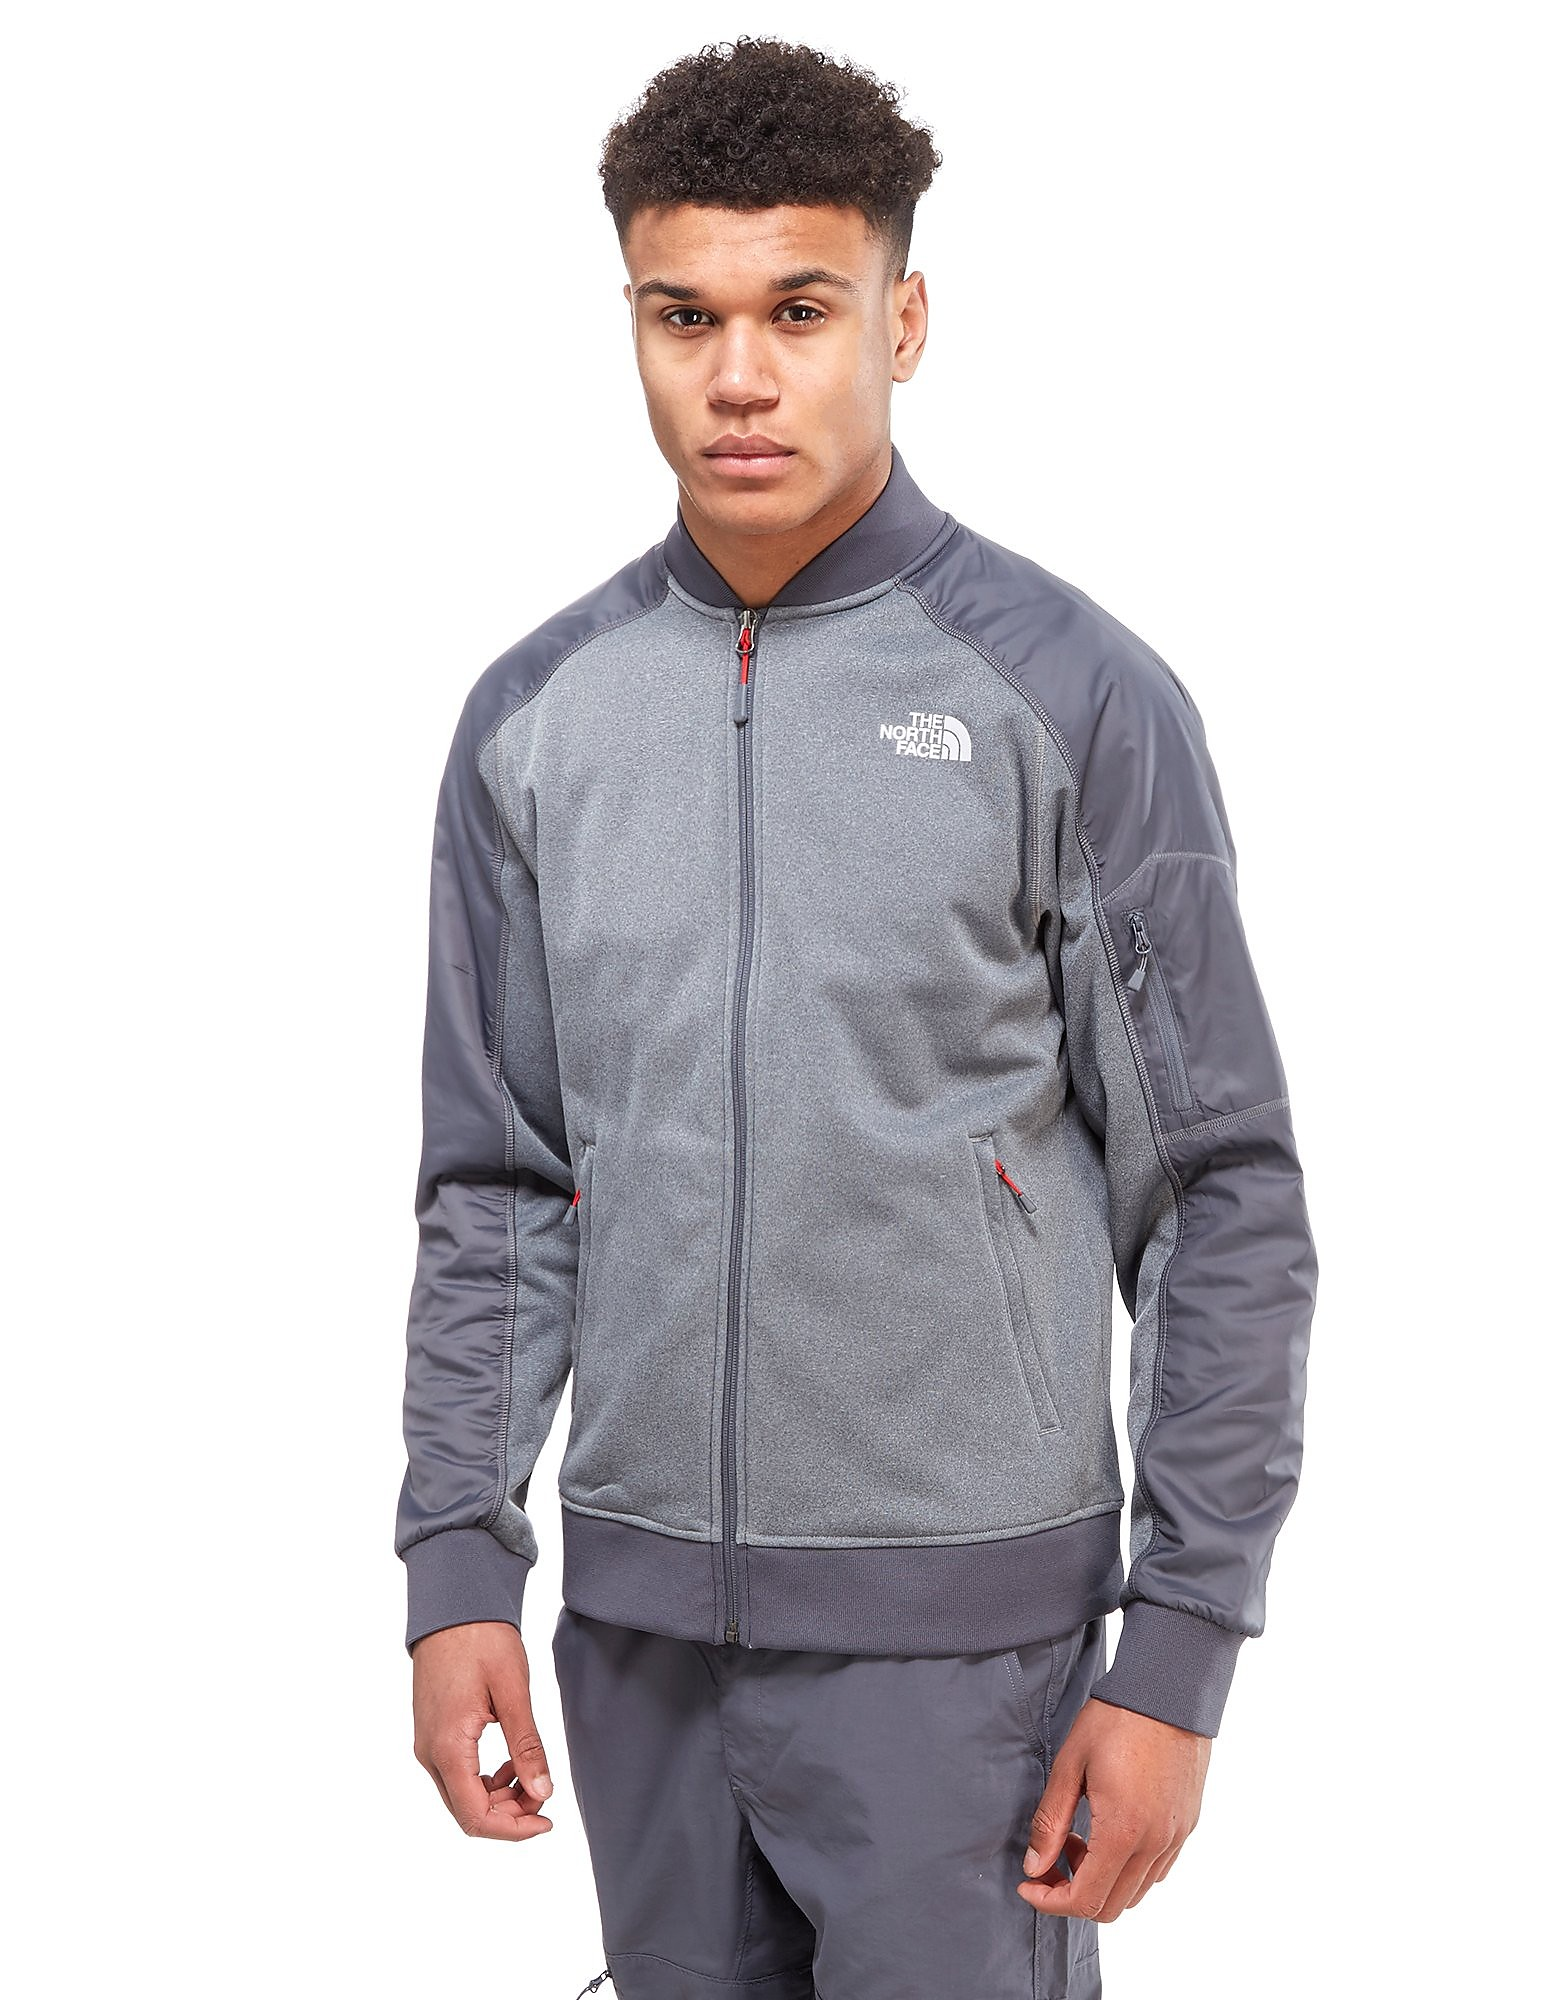 The North Face Tech Bomber Jacket